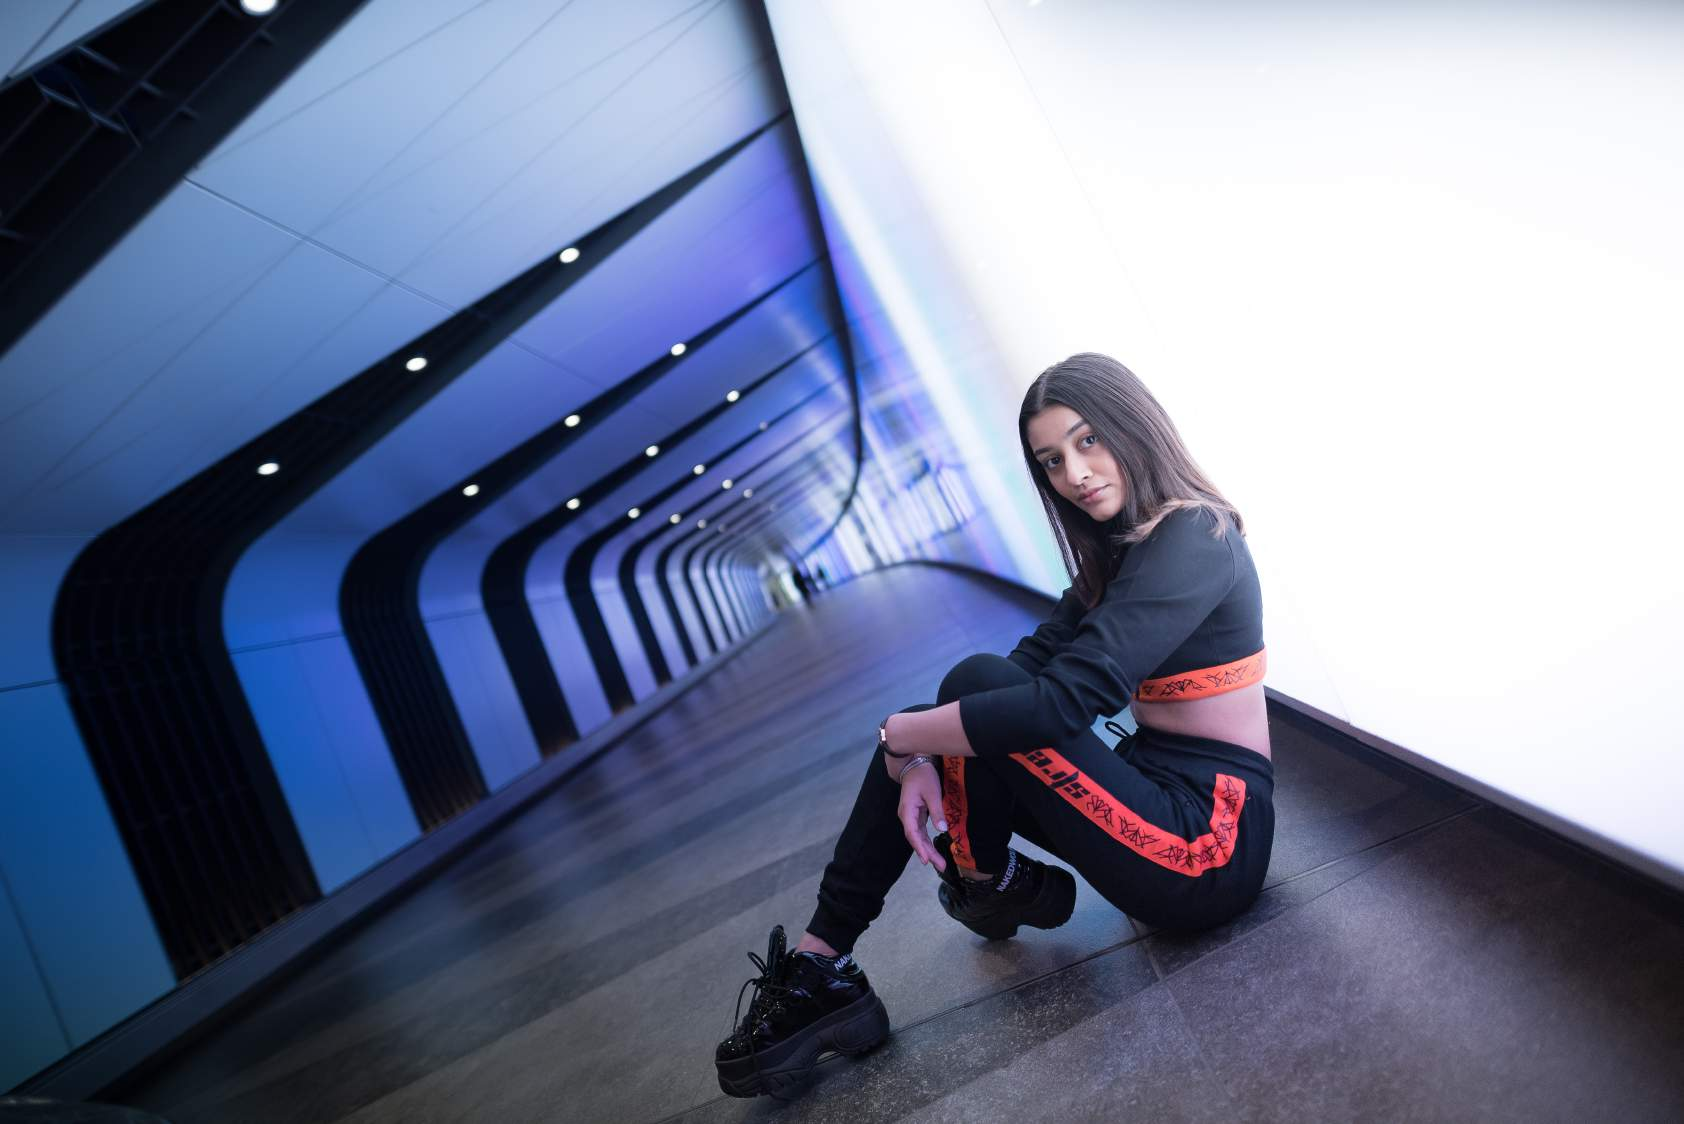 A girl wearing Black colored crop top with orange band at the bottom with a zip in the front and black and orange track pants with orange strips on the side of the track pant and high boots. Sitting in a subway.